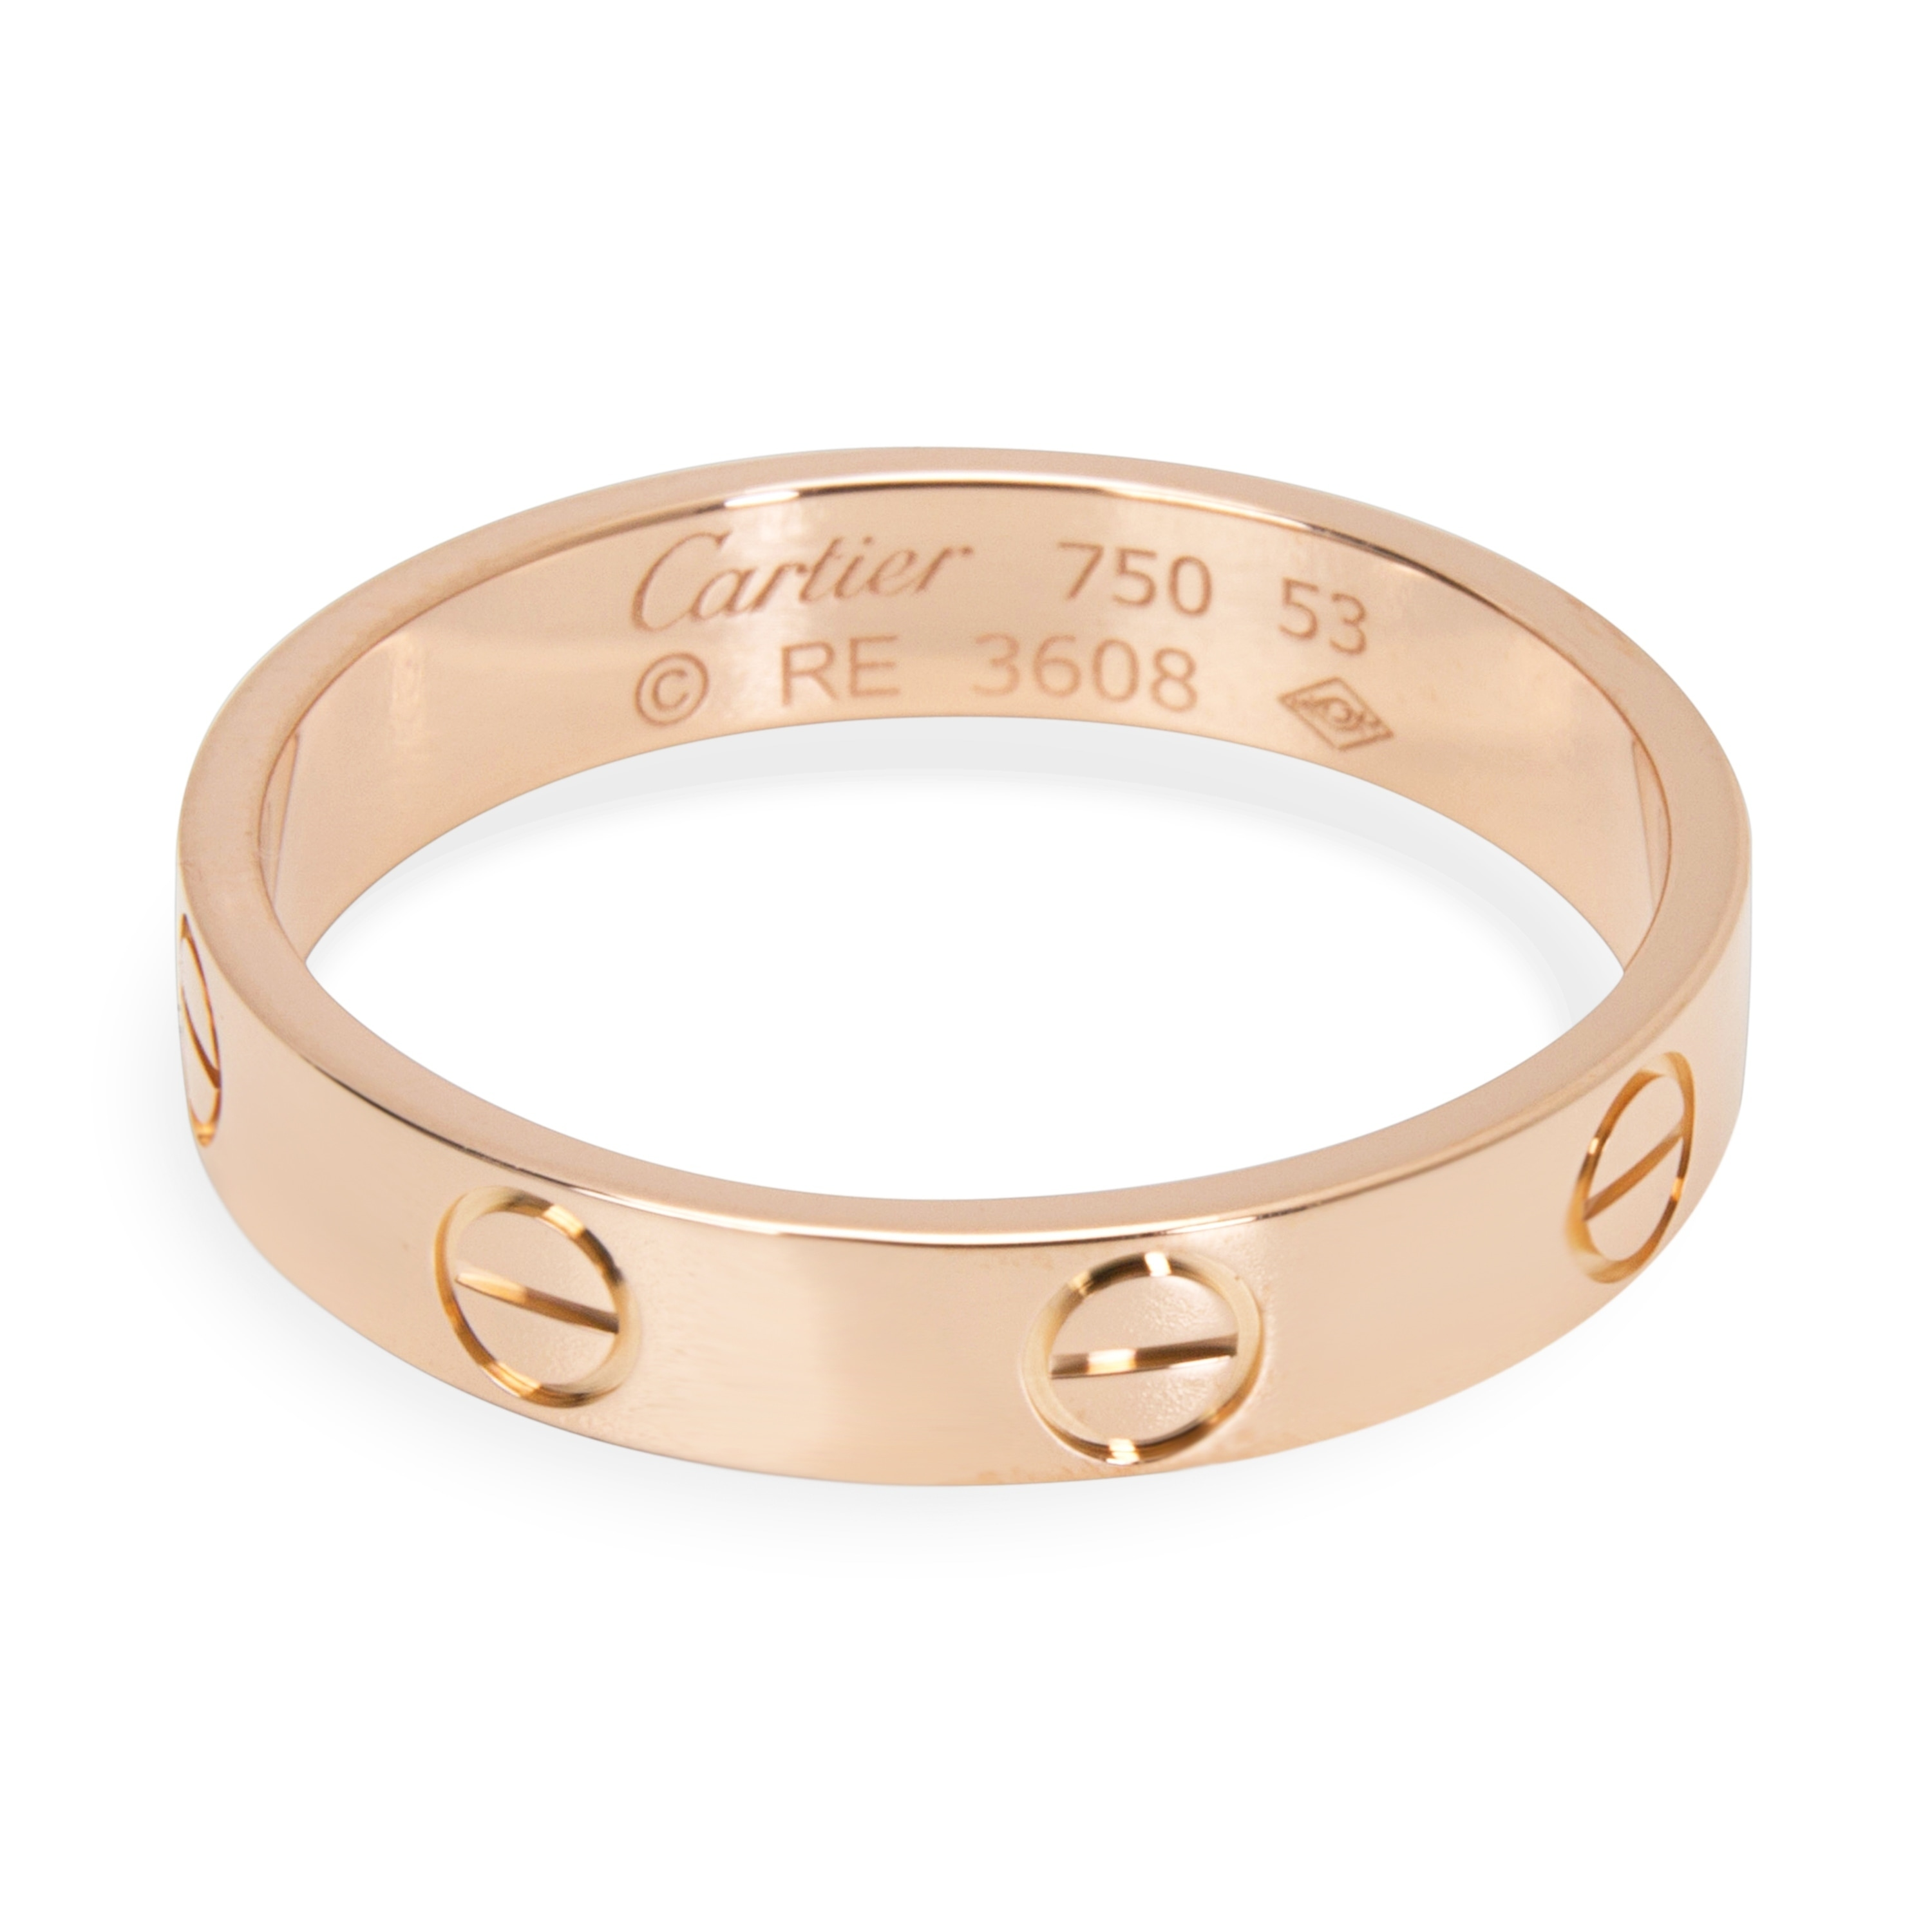 Pre-Owned Cartier Love Ring in 18KT Rose Gold 4mm